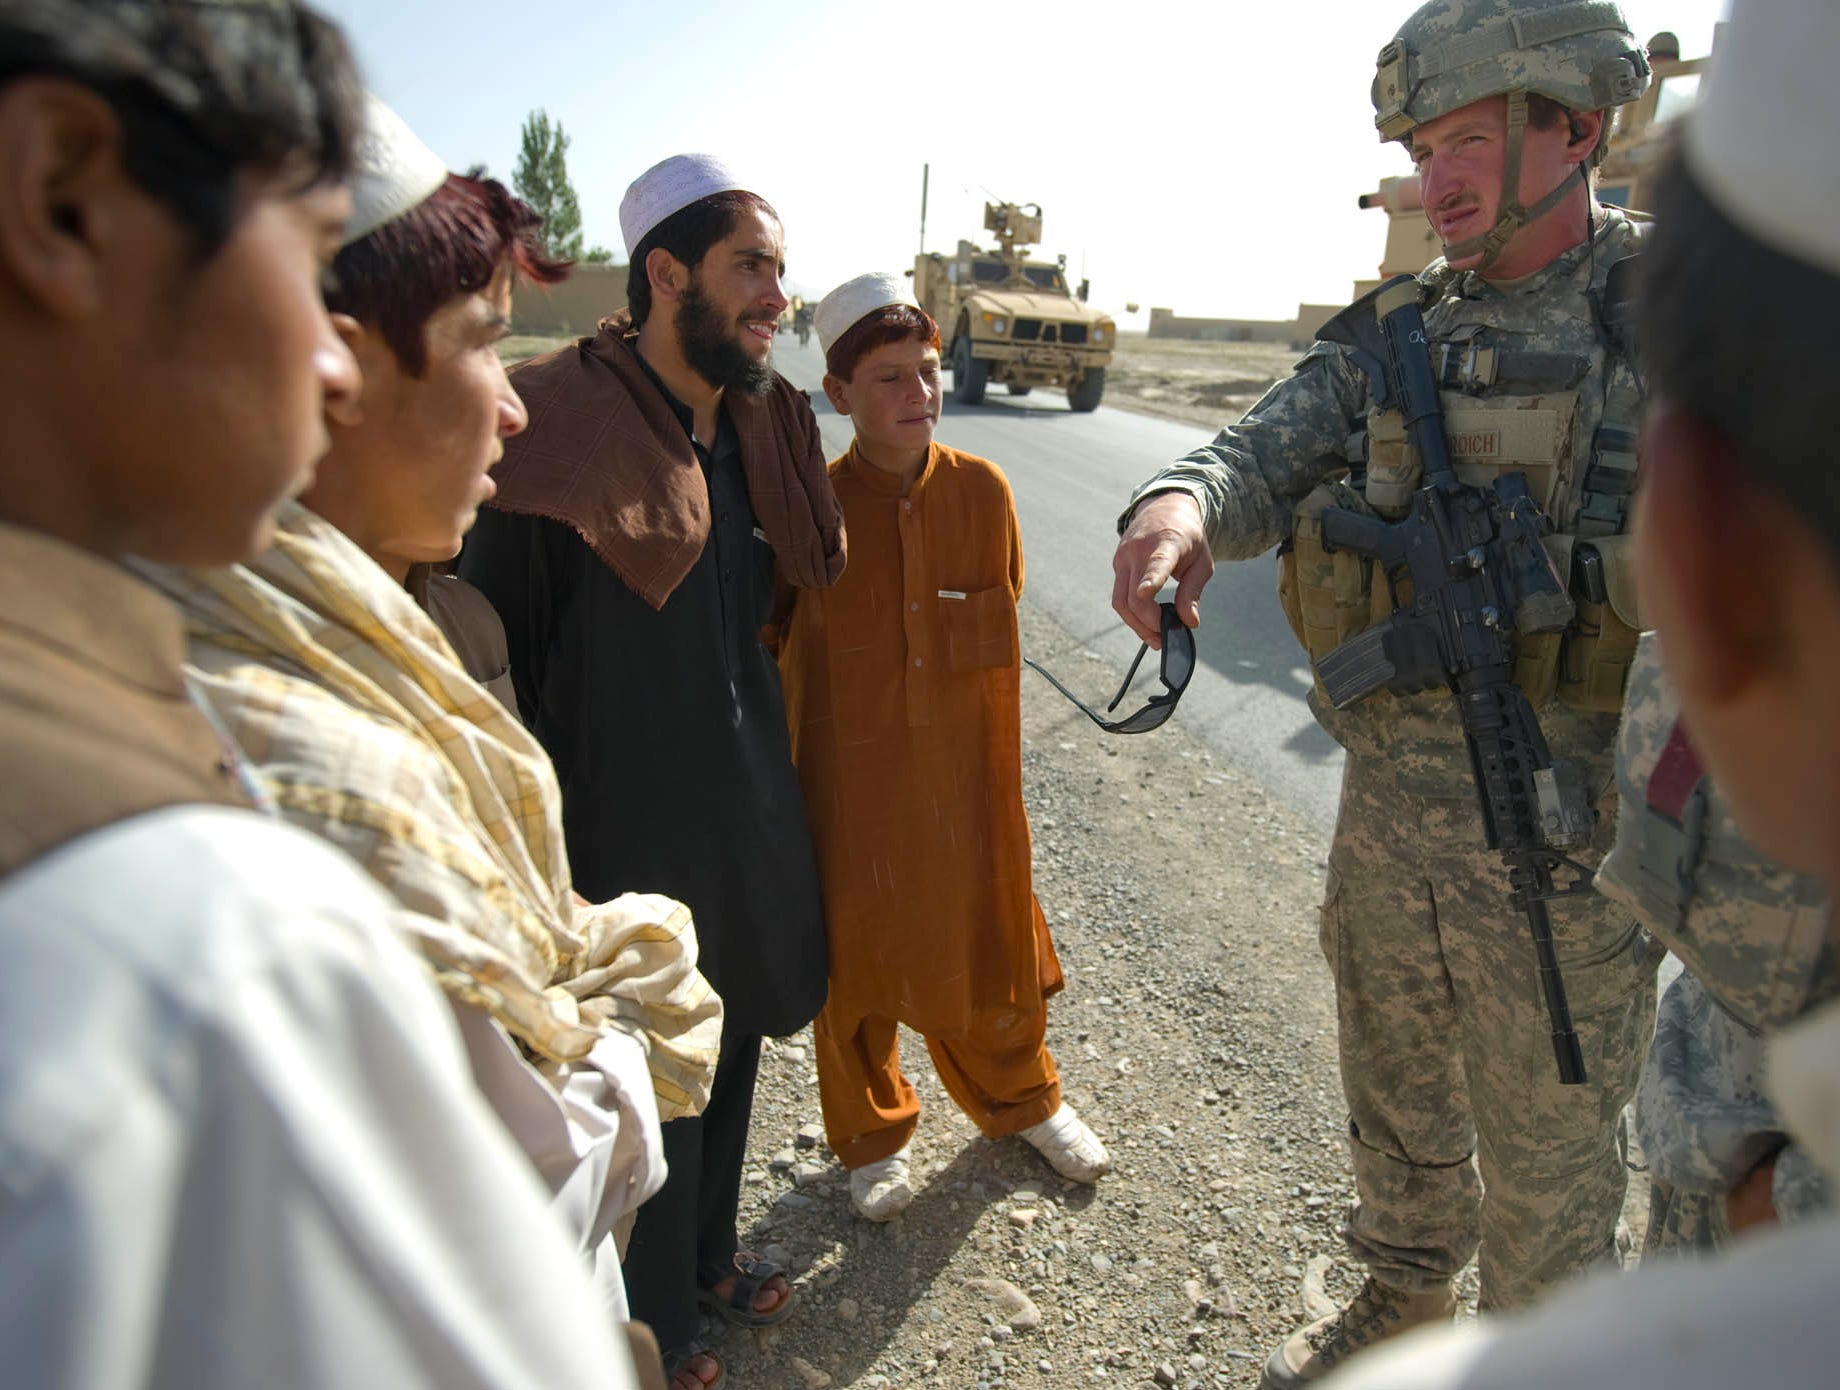 "Vermont National Guard Sgt. 1st Class Matt Briosch of St. Albans, Vt., warns kids along a road north of Gardez City to inform Afghan authorities if they see anything suspicious as EOD soldiers sweep the road looking for reported IED activity on Sunday, September 19, 2010. The road was the site of at least one ""complex attack"" by insurgents recently combining IED, mortar or rocket and small arms fire."